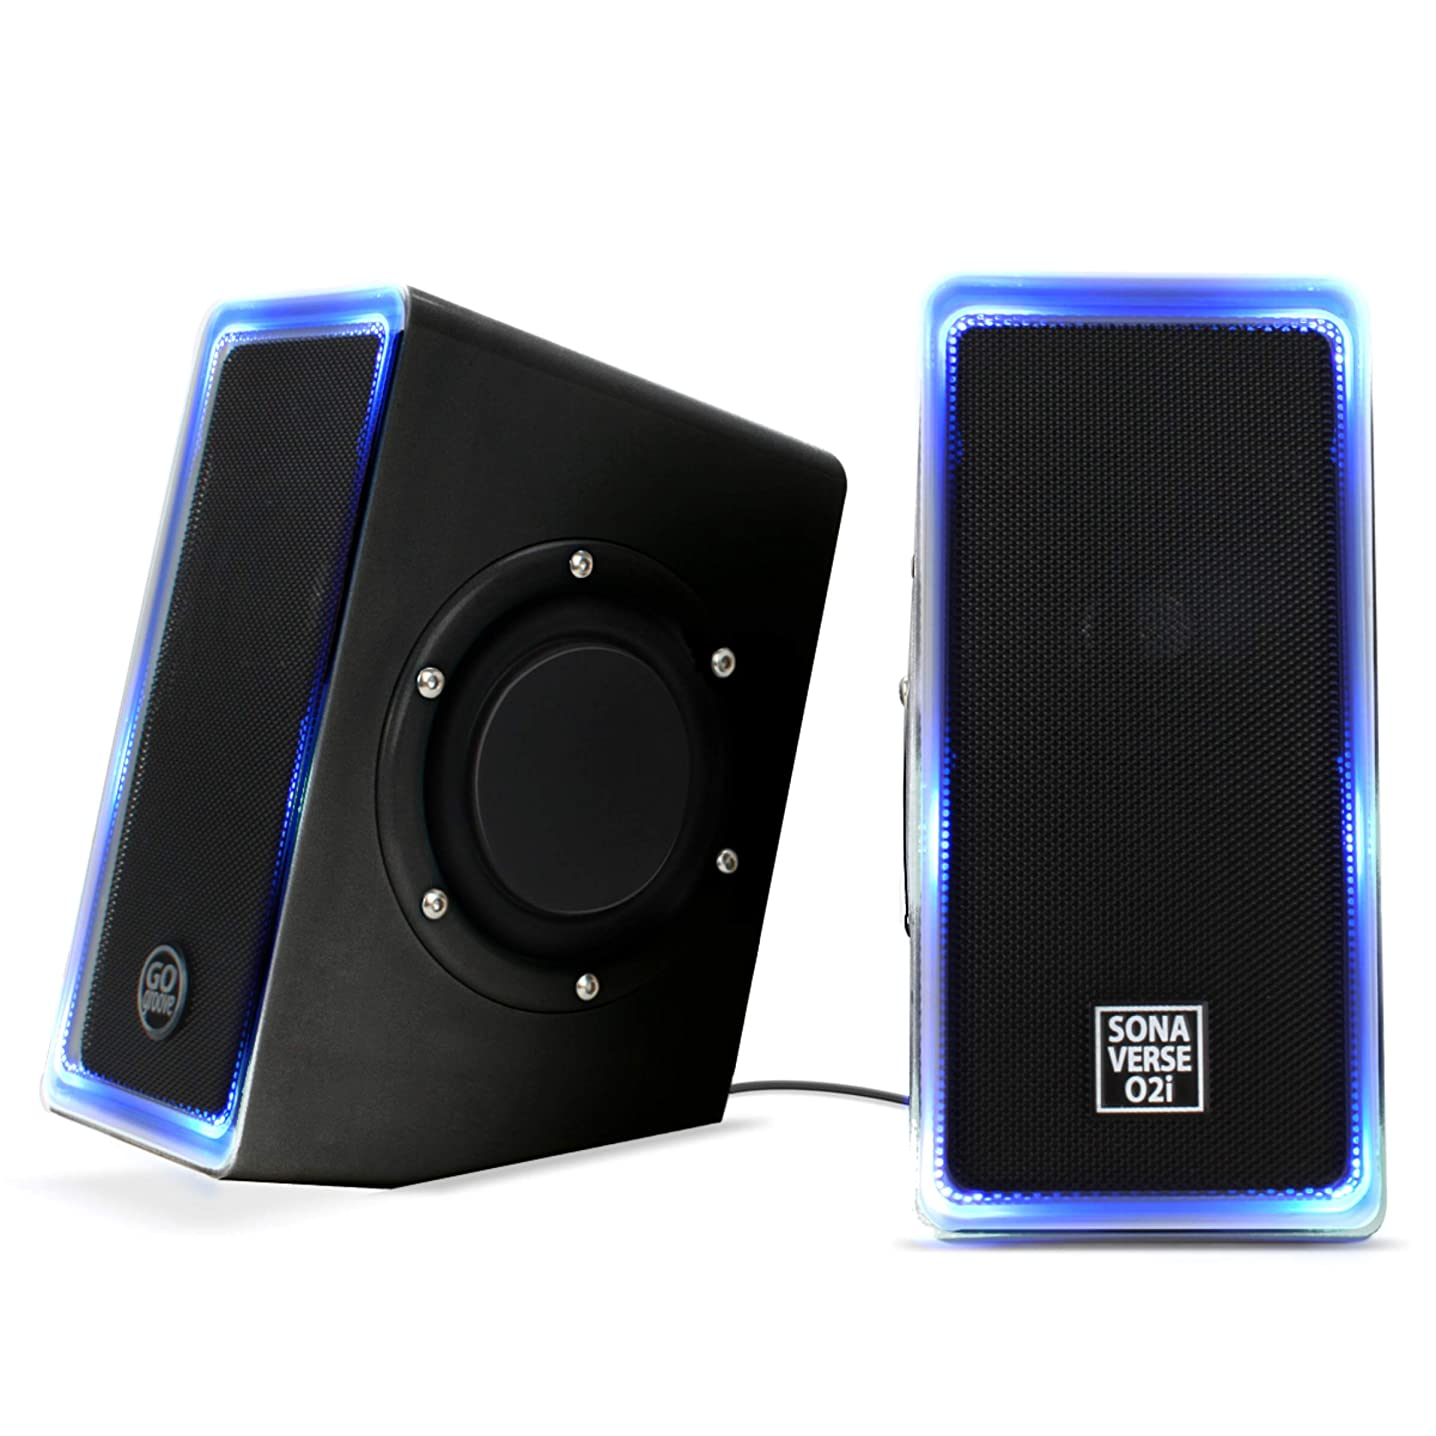 GOgroove Desktop Speakers for Laptop Computer (Black with LEDs) SonaVERSE O2i Gaming Computer Speakers USB Powered with AUX Input, Blue LED Lights, Dual 2.5